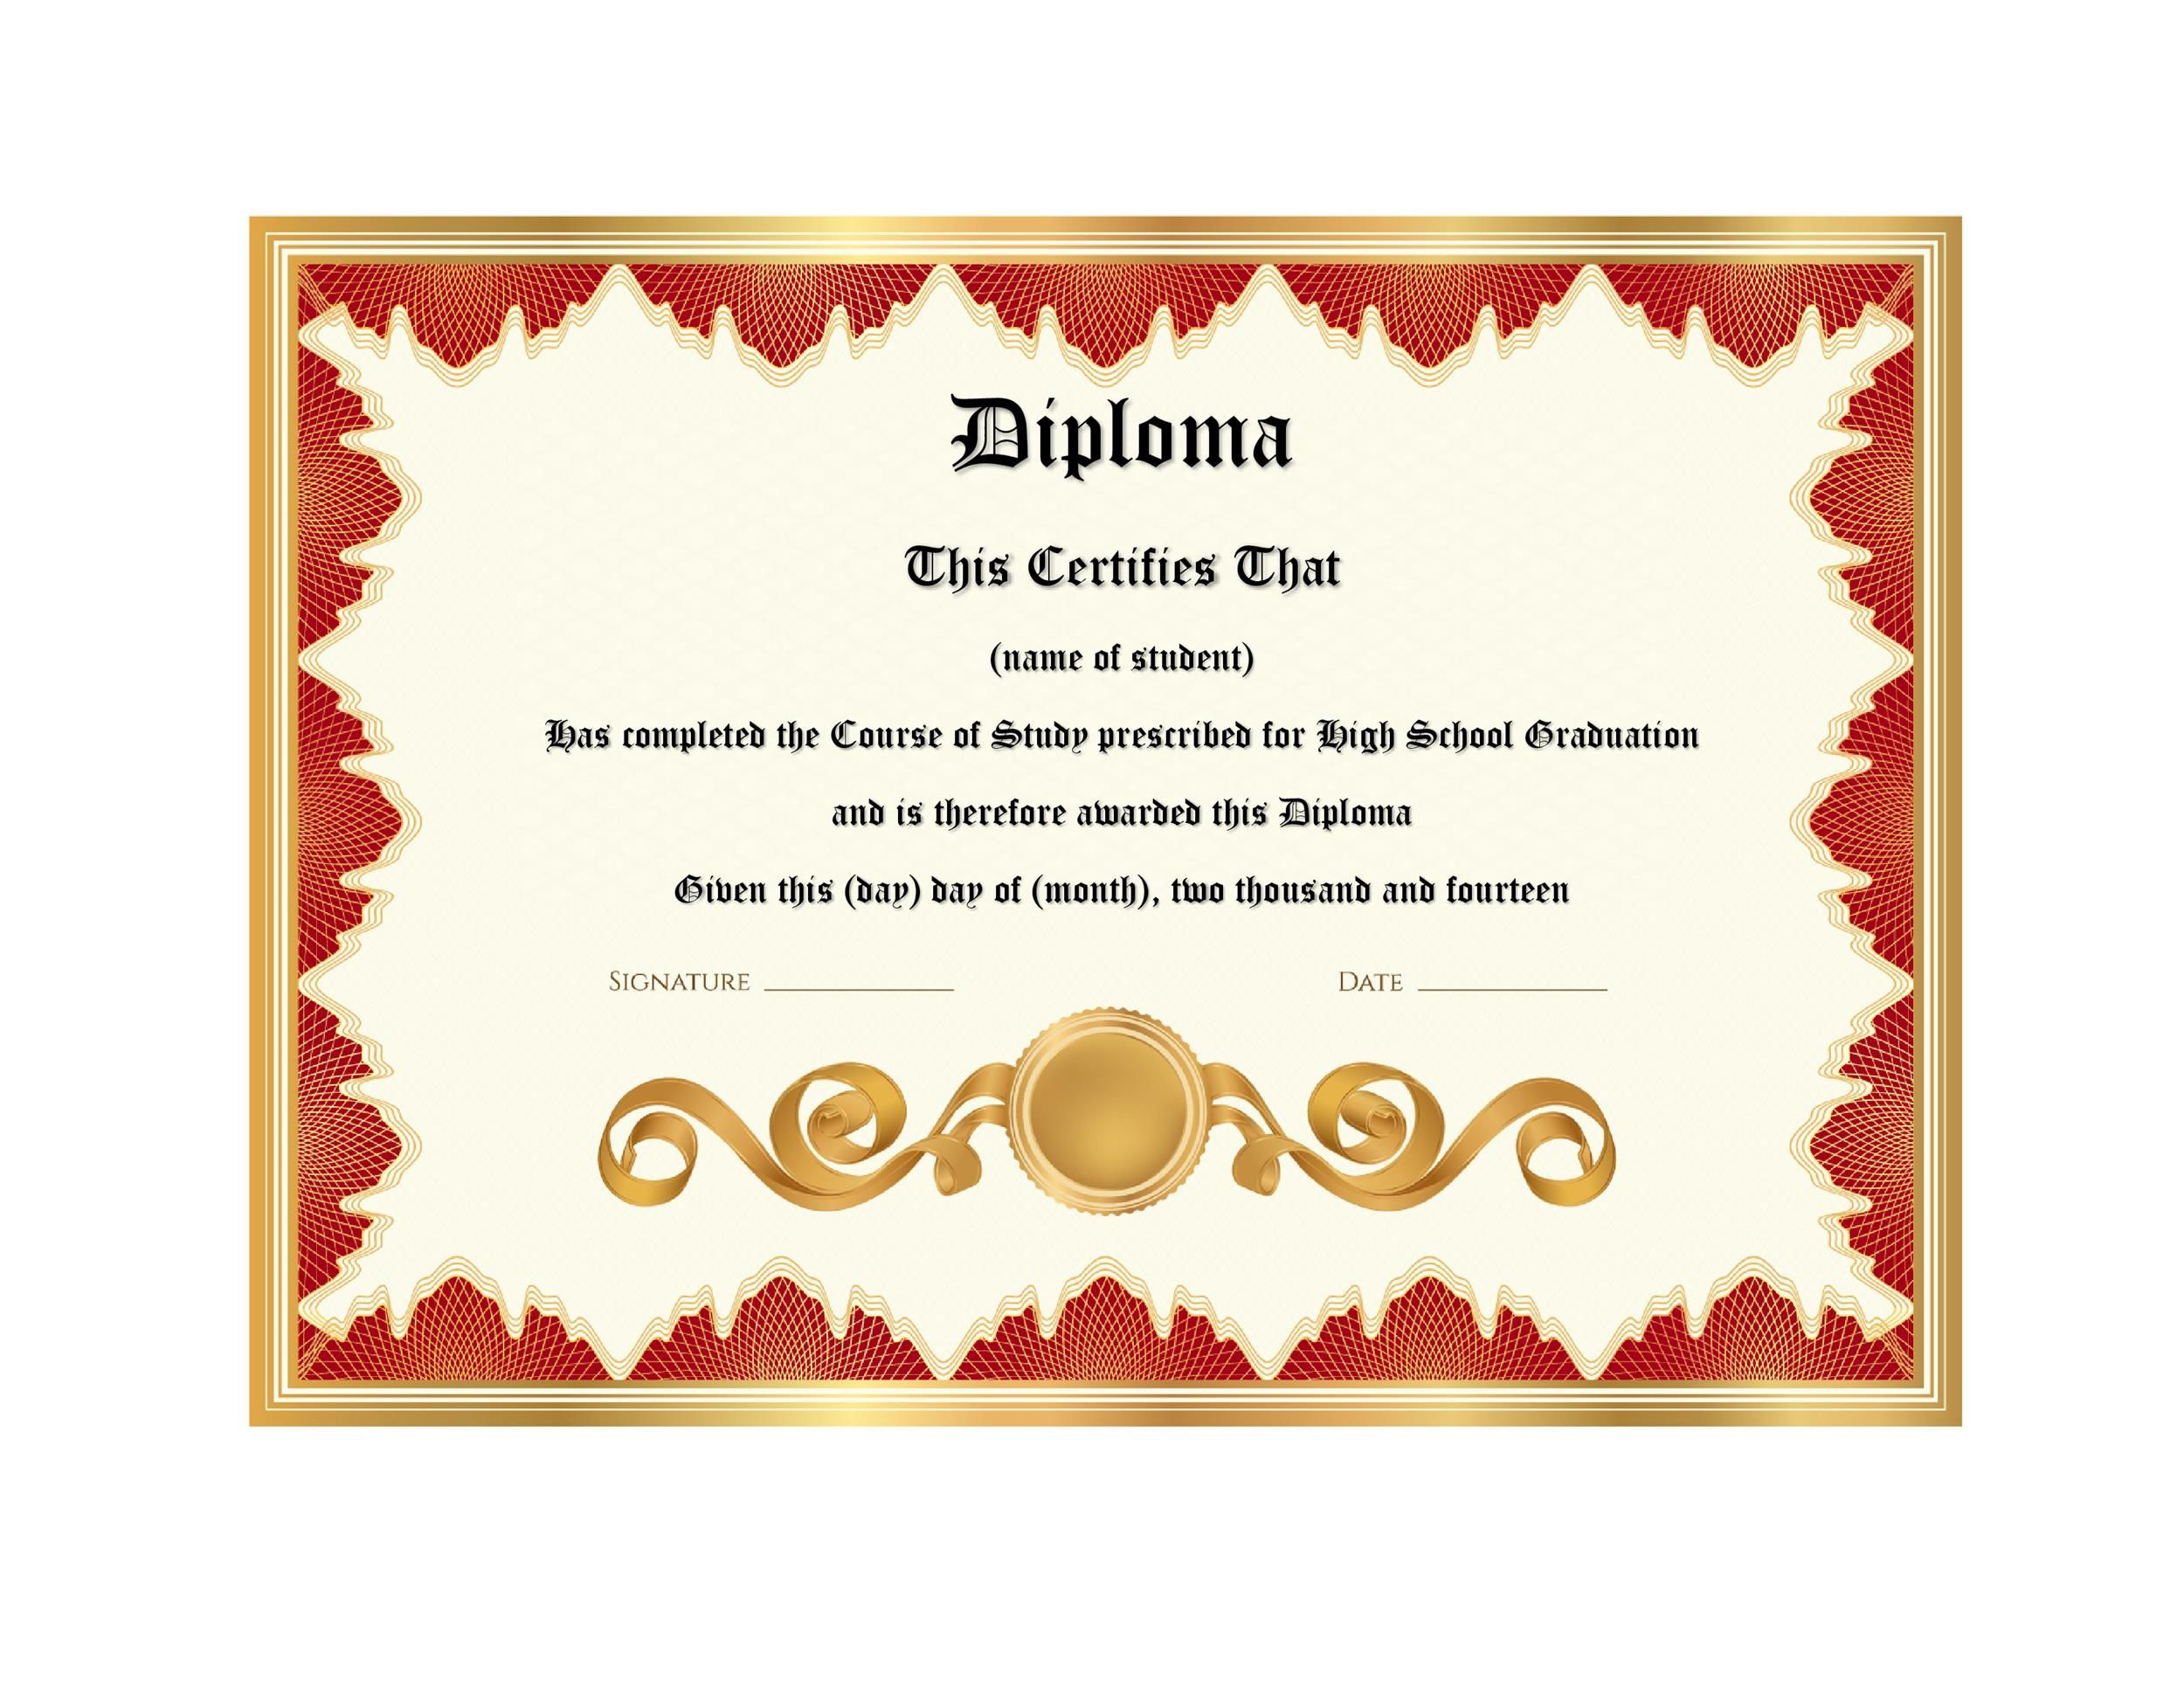 010 Stirring Free Diploma Template Download Image  Word Certificate High School AppreciationFull